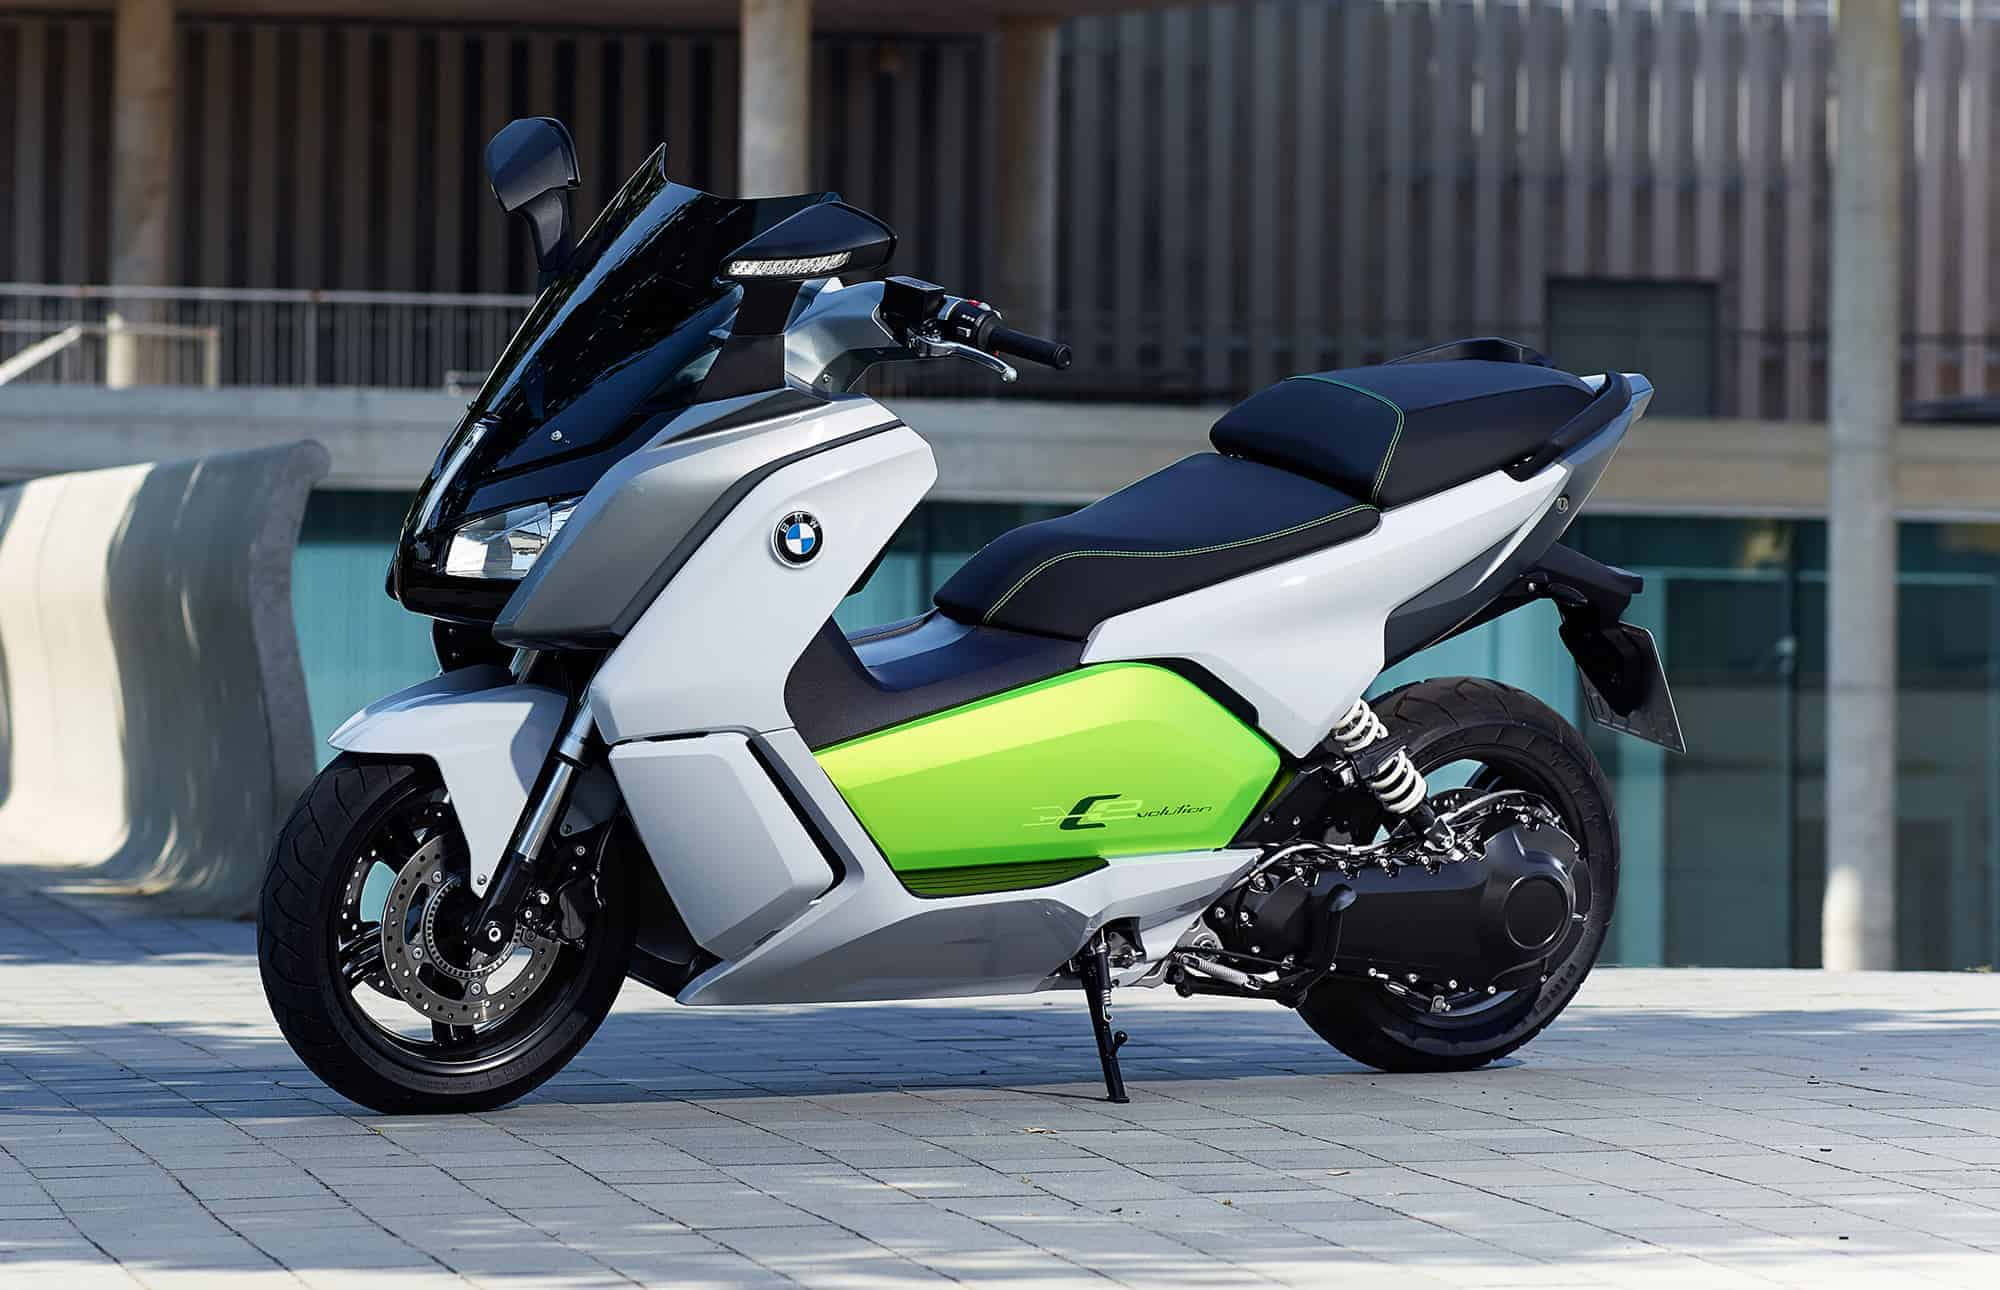 The new BMW C evolution – Dynamic riding fun with zero emissions